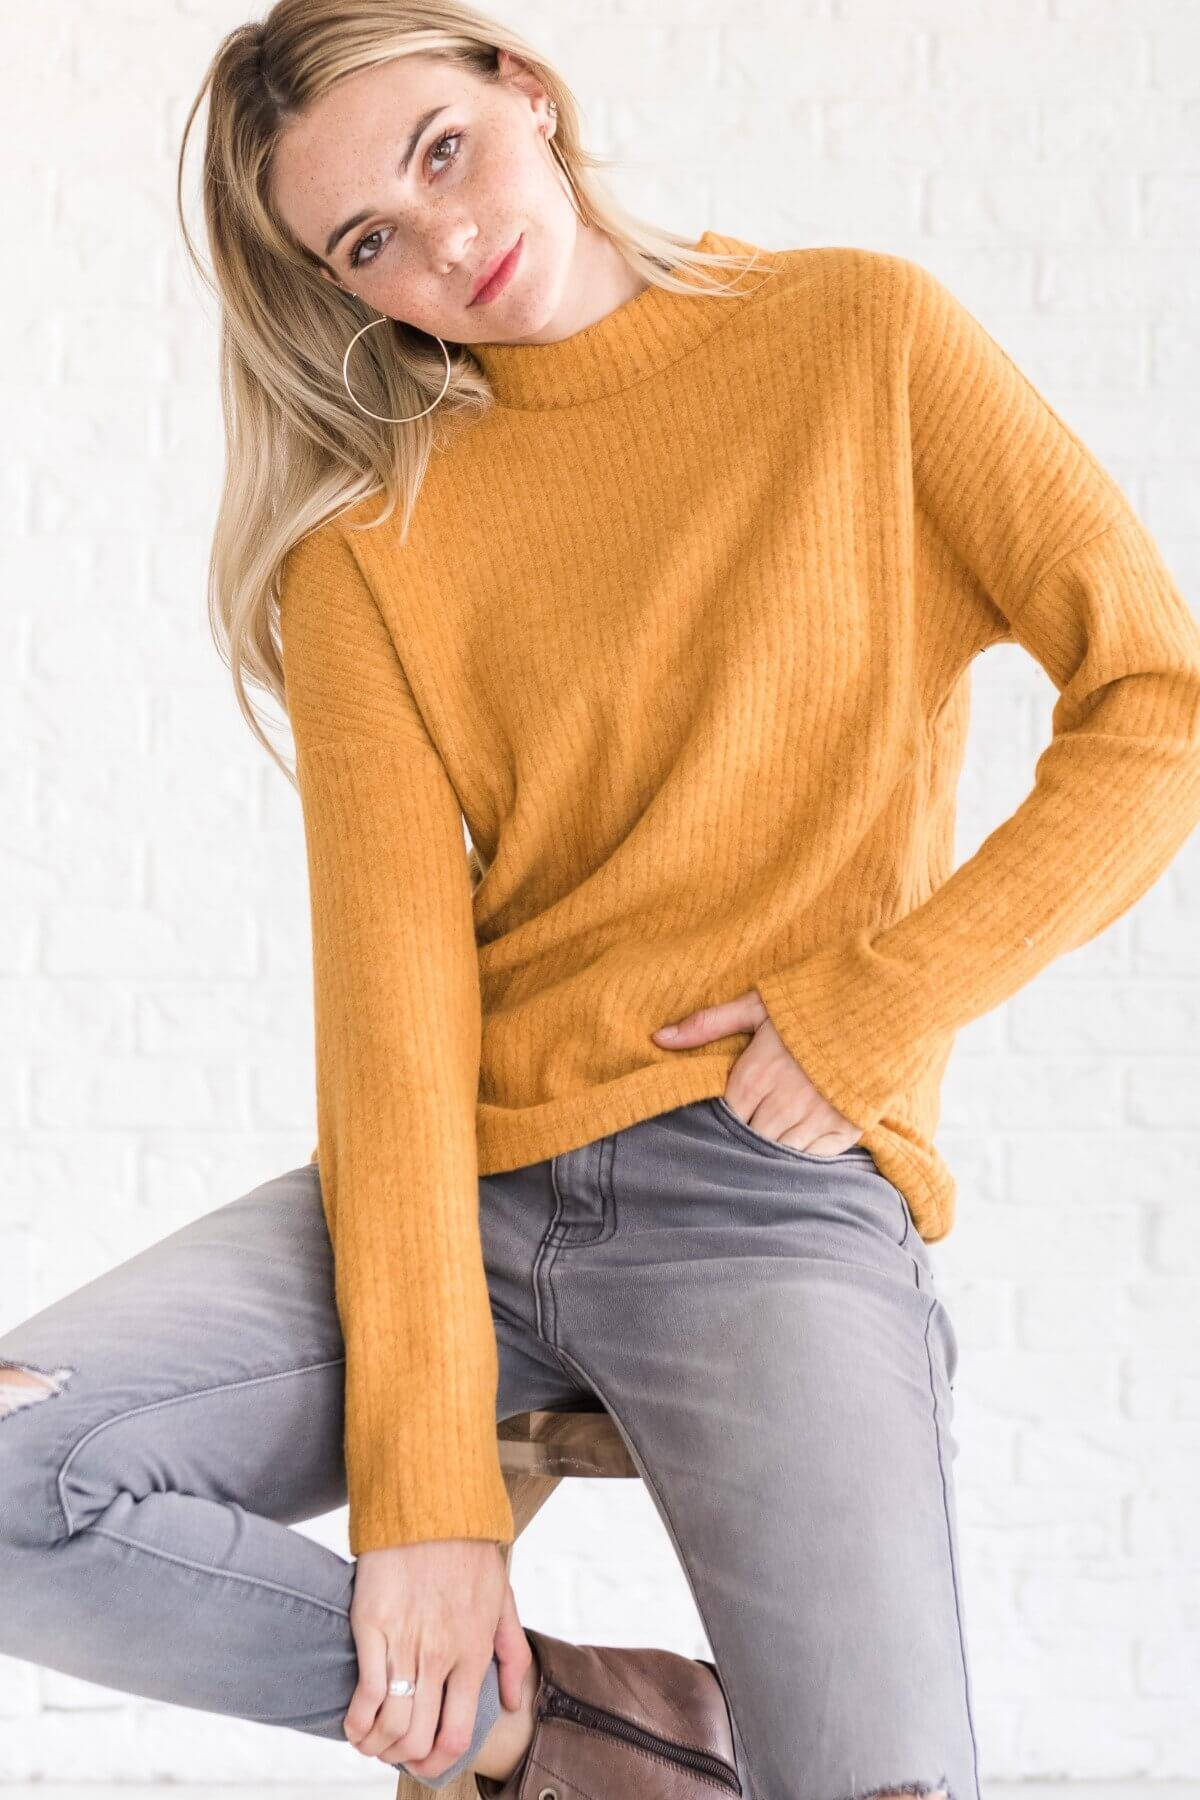 Mustard Yellow Mock Neck Sweaters for Women